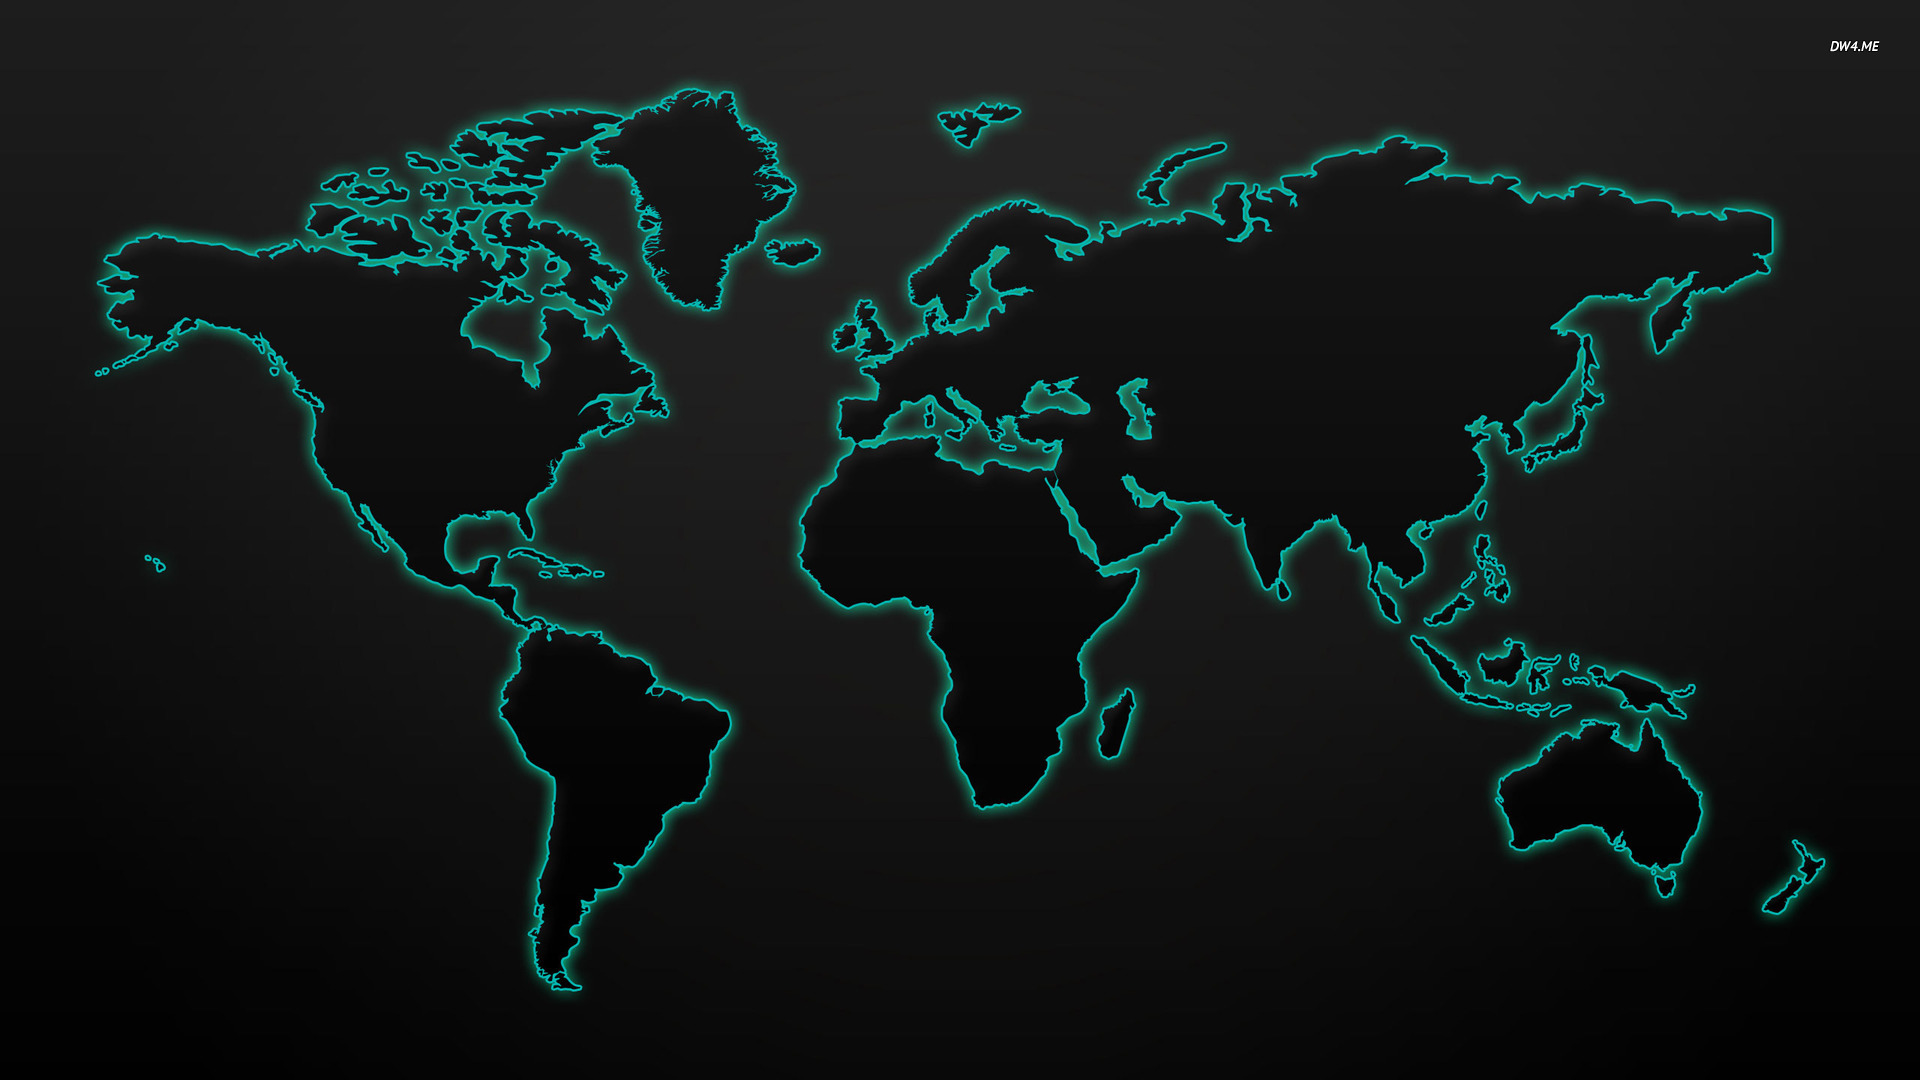 ... Glowing world map wallpaper 1920x1080 ...